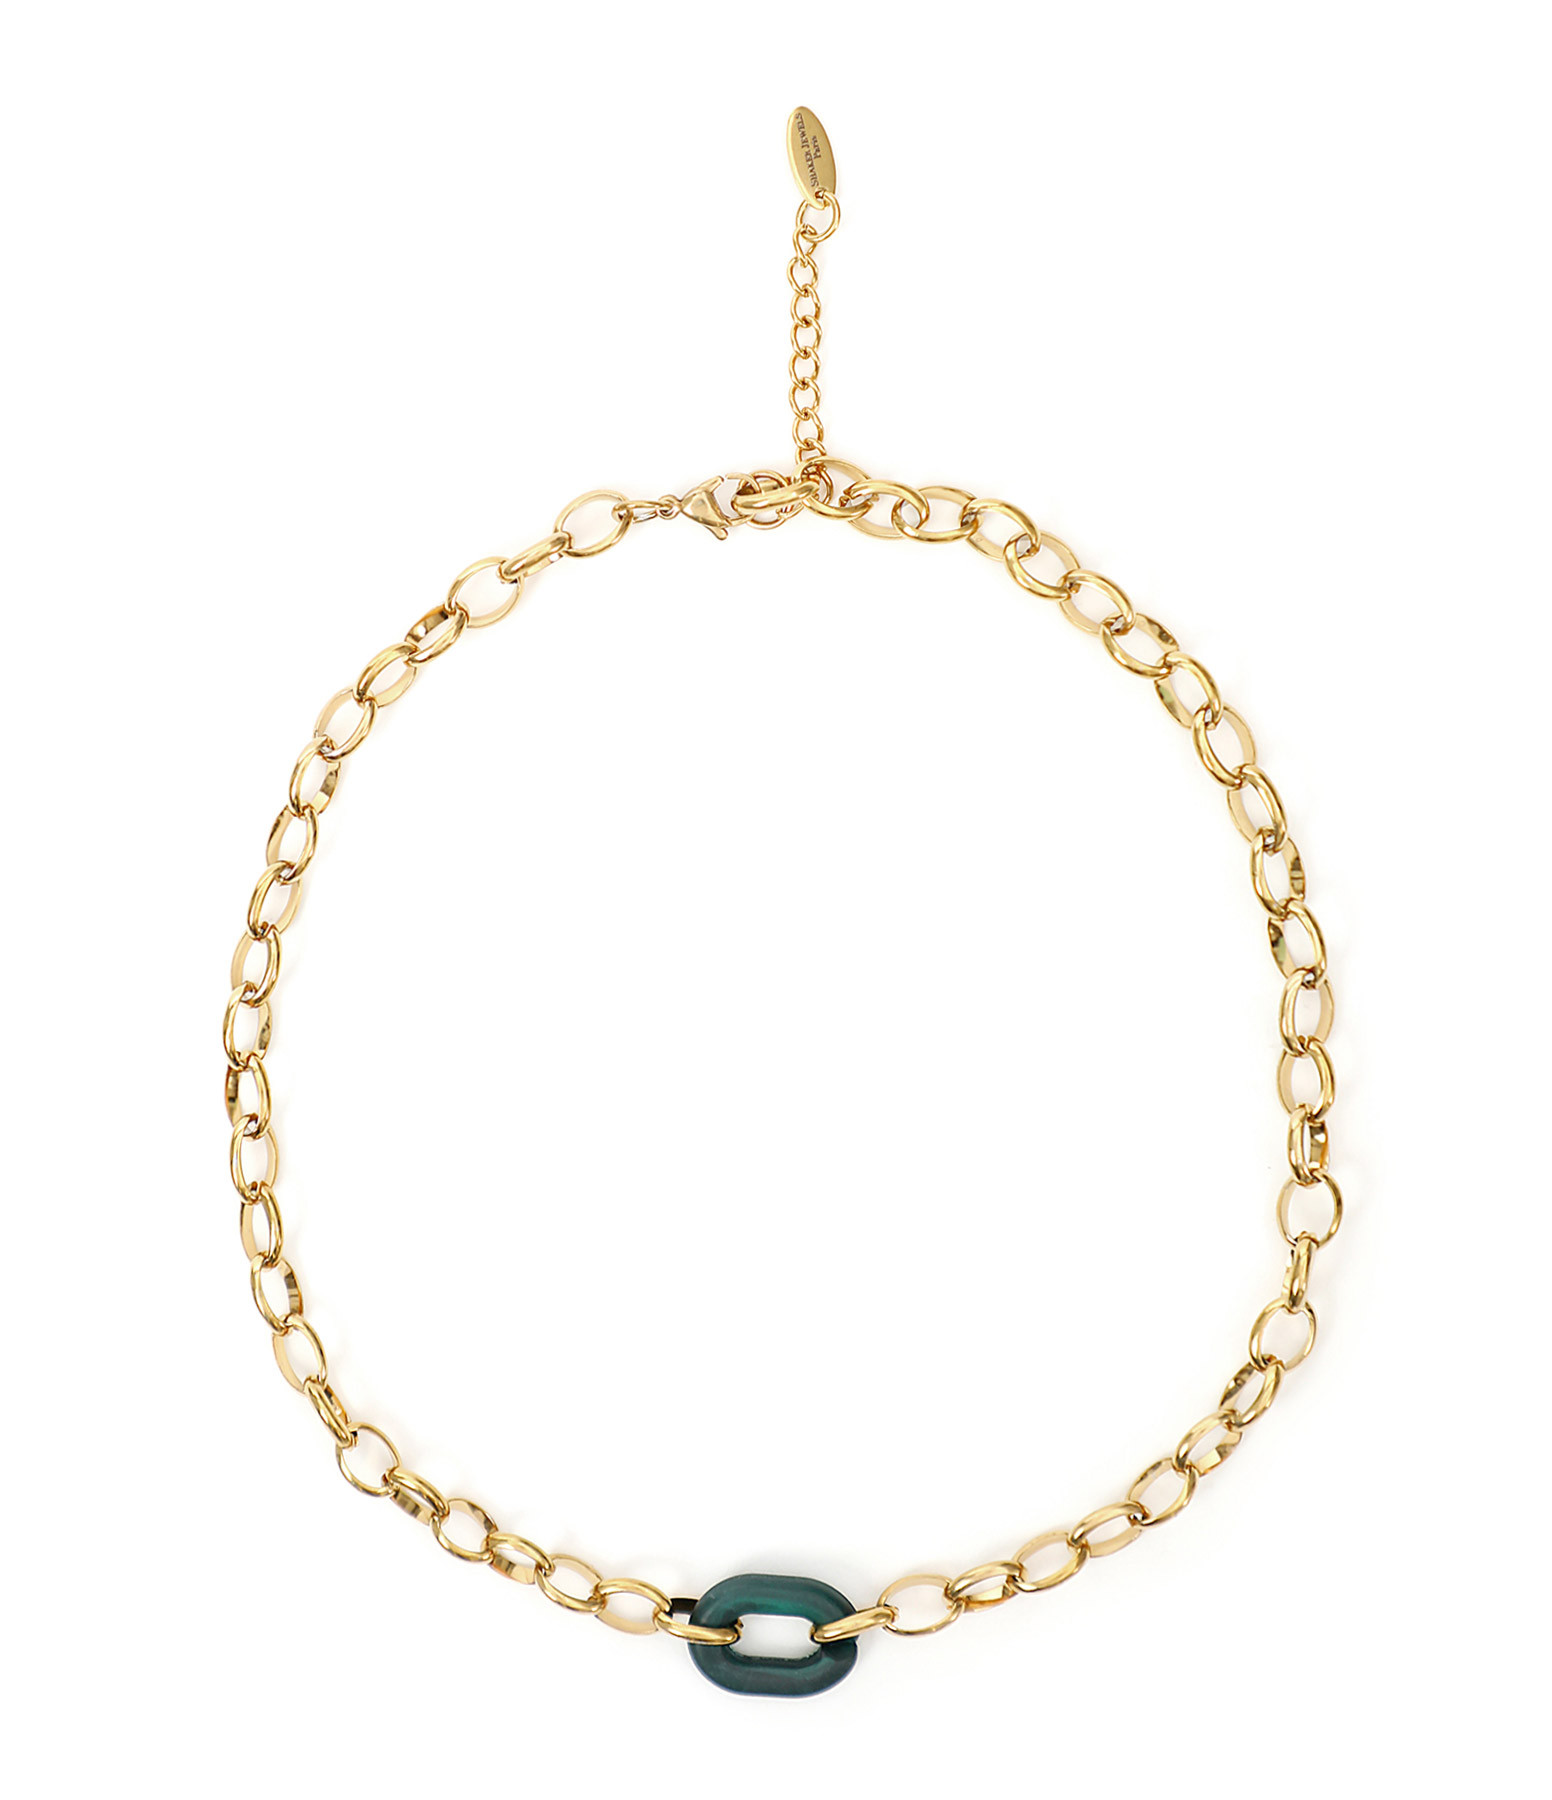 SHAKER JEWELS - Collier Lisia Boucle Maille Plaqué Or